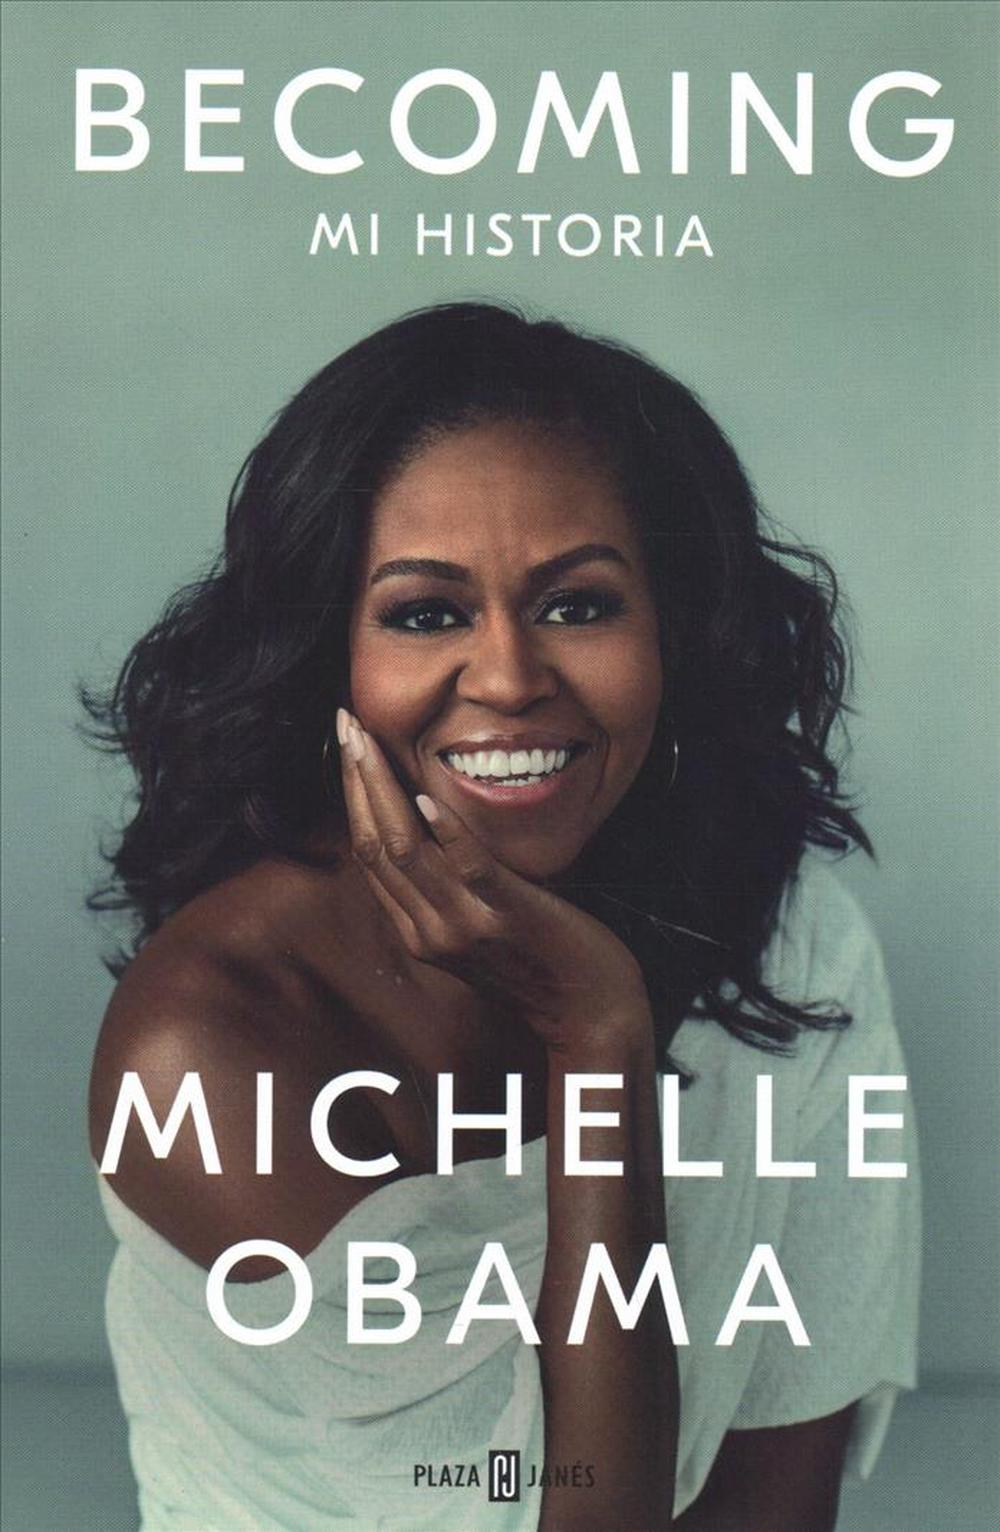 Becoming by Michelle Obama, ISBN: 9781947783775